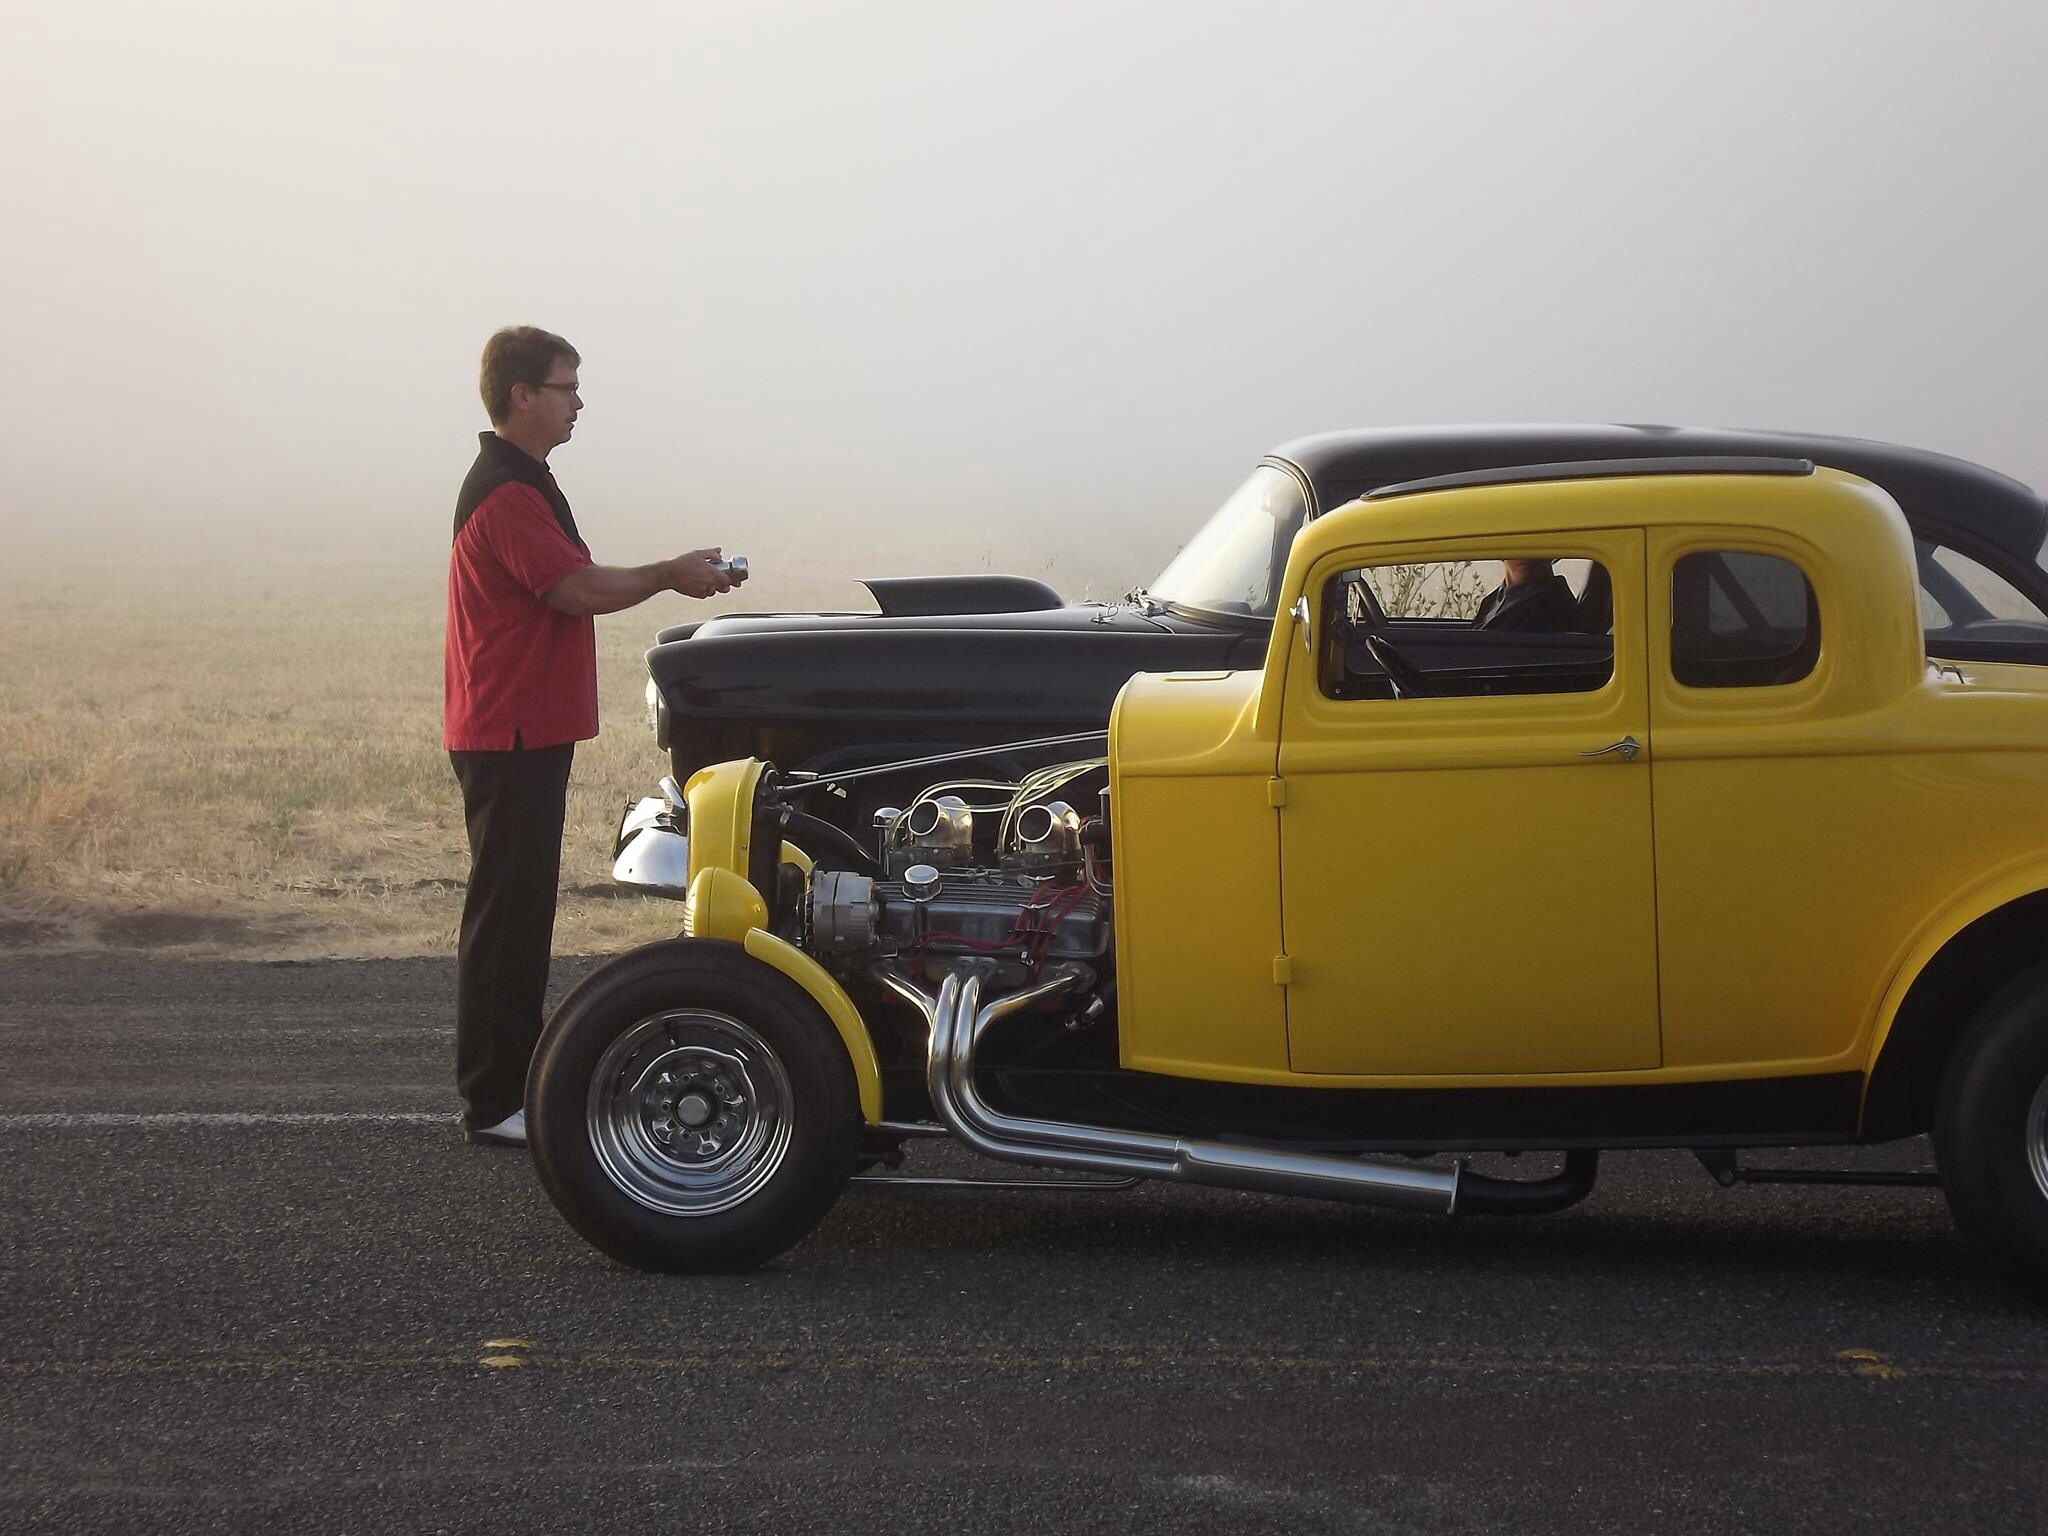 Classic Shot American Graffiti American Graffiti Cars Movie